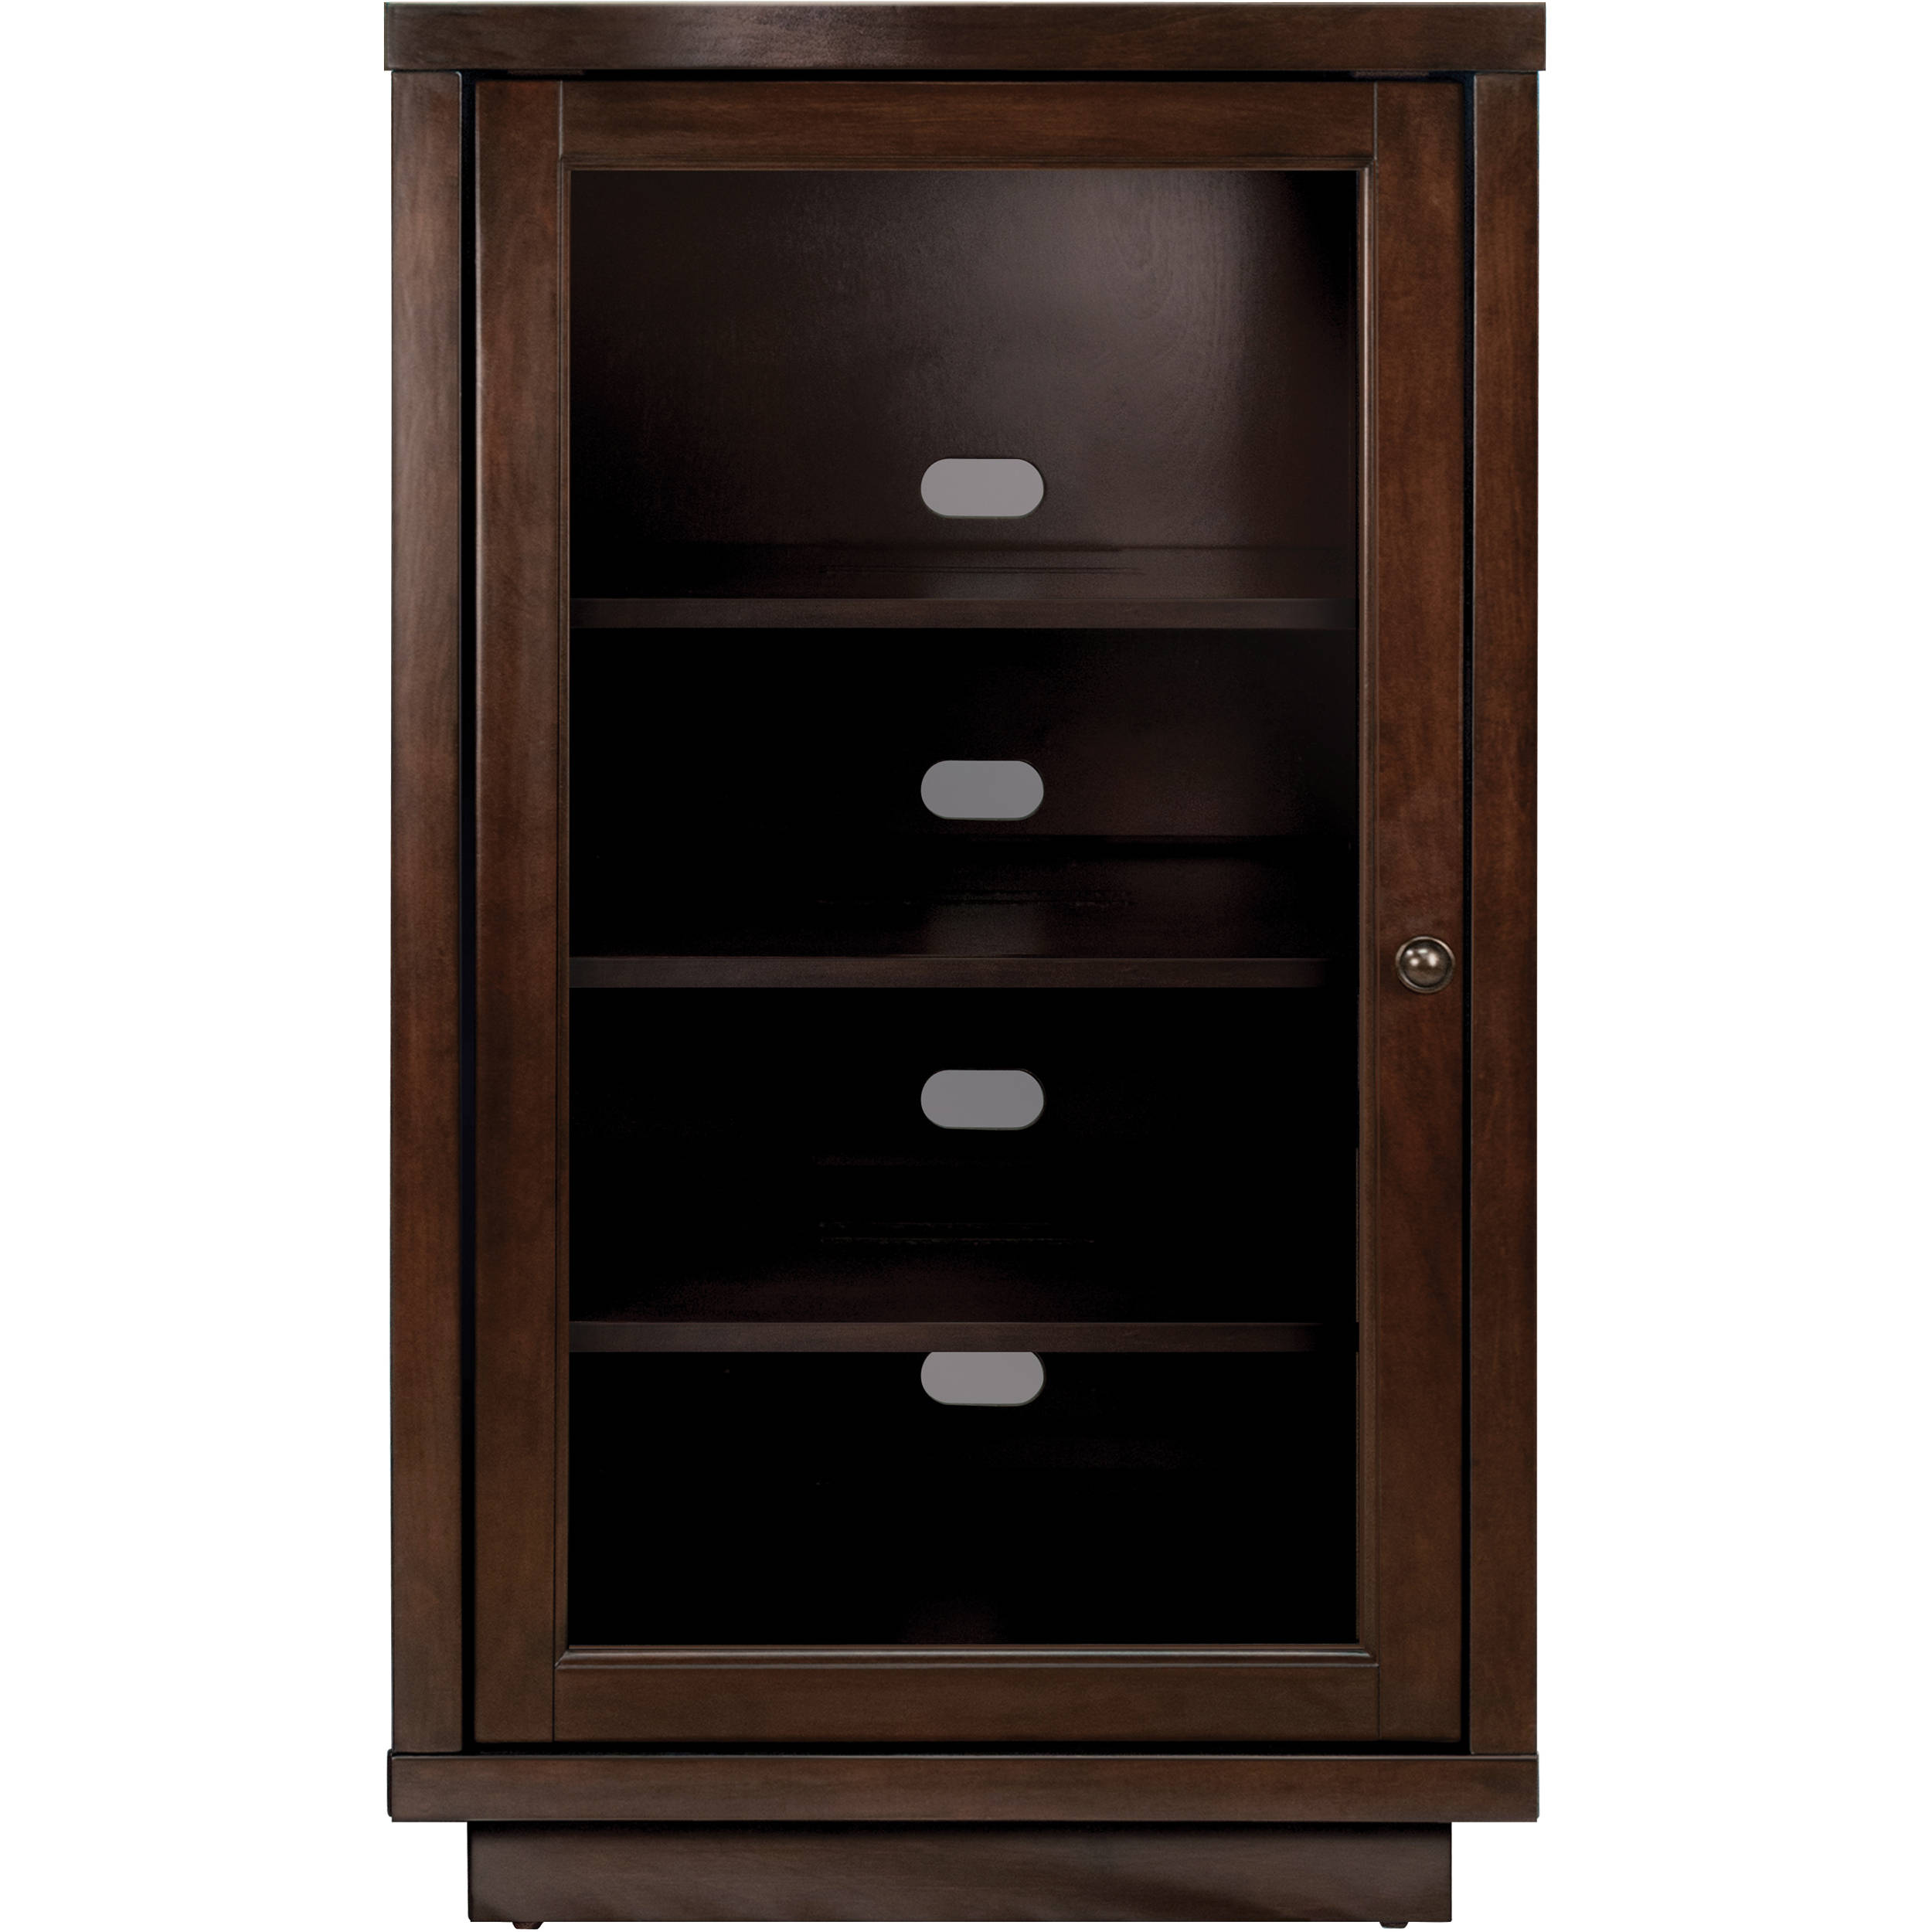 Bell O Atc402 Wood Enclosed Audio Video Component Cabinet